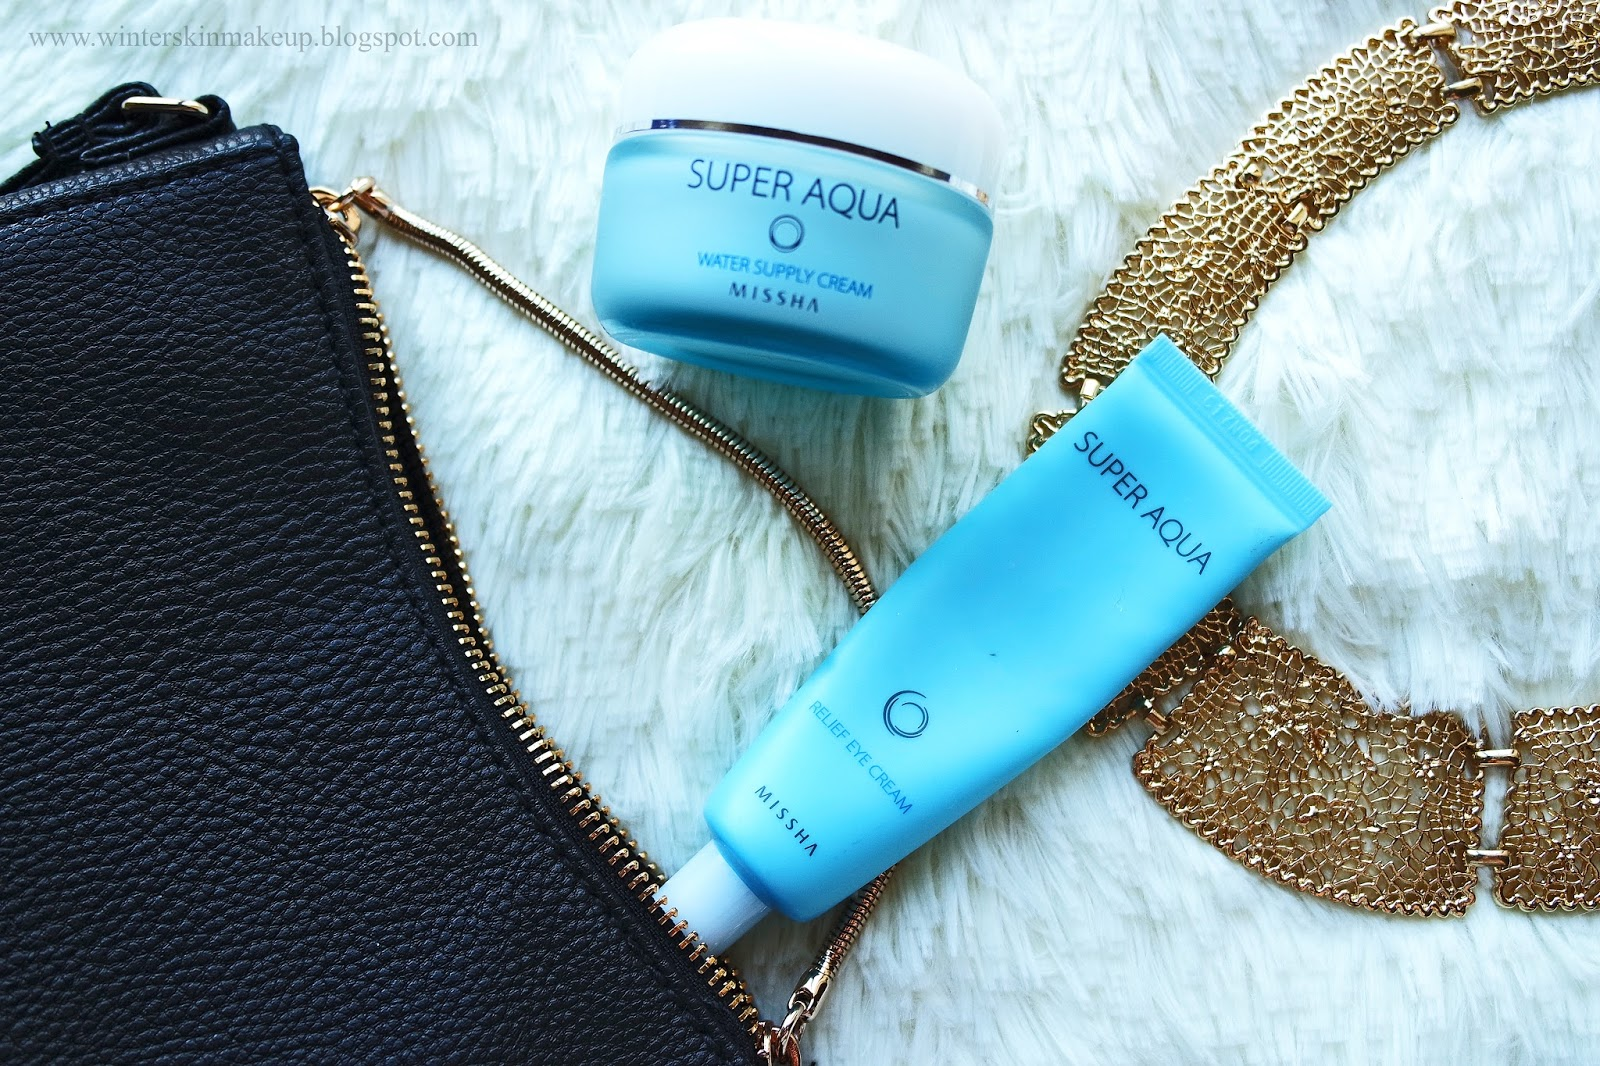 Missha Super Aqua Water Supply Cream